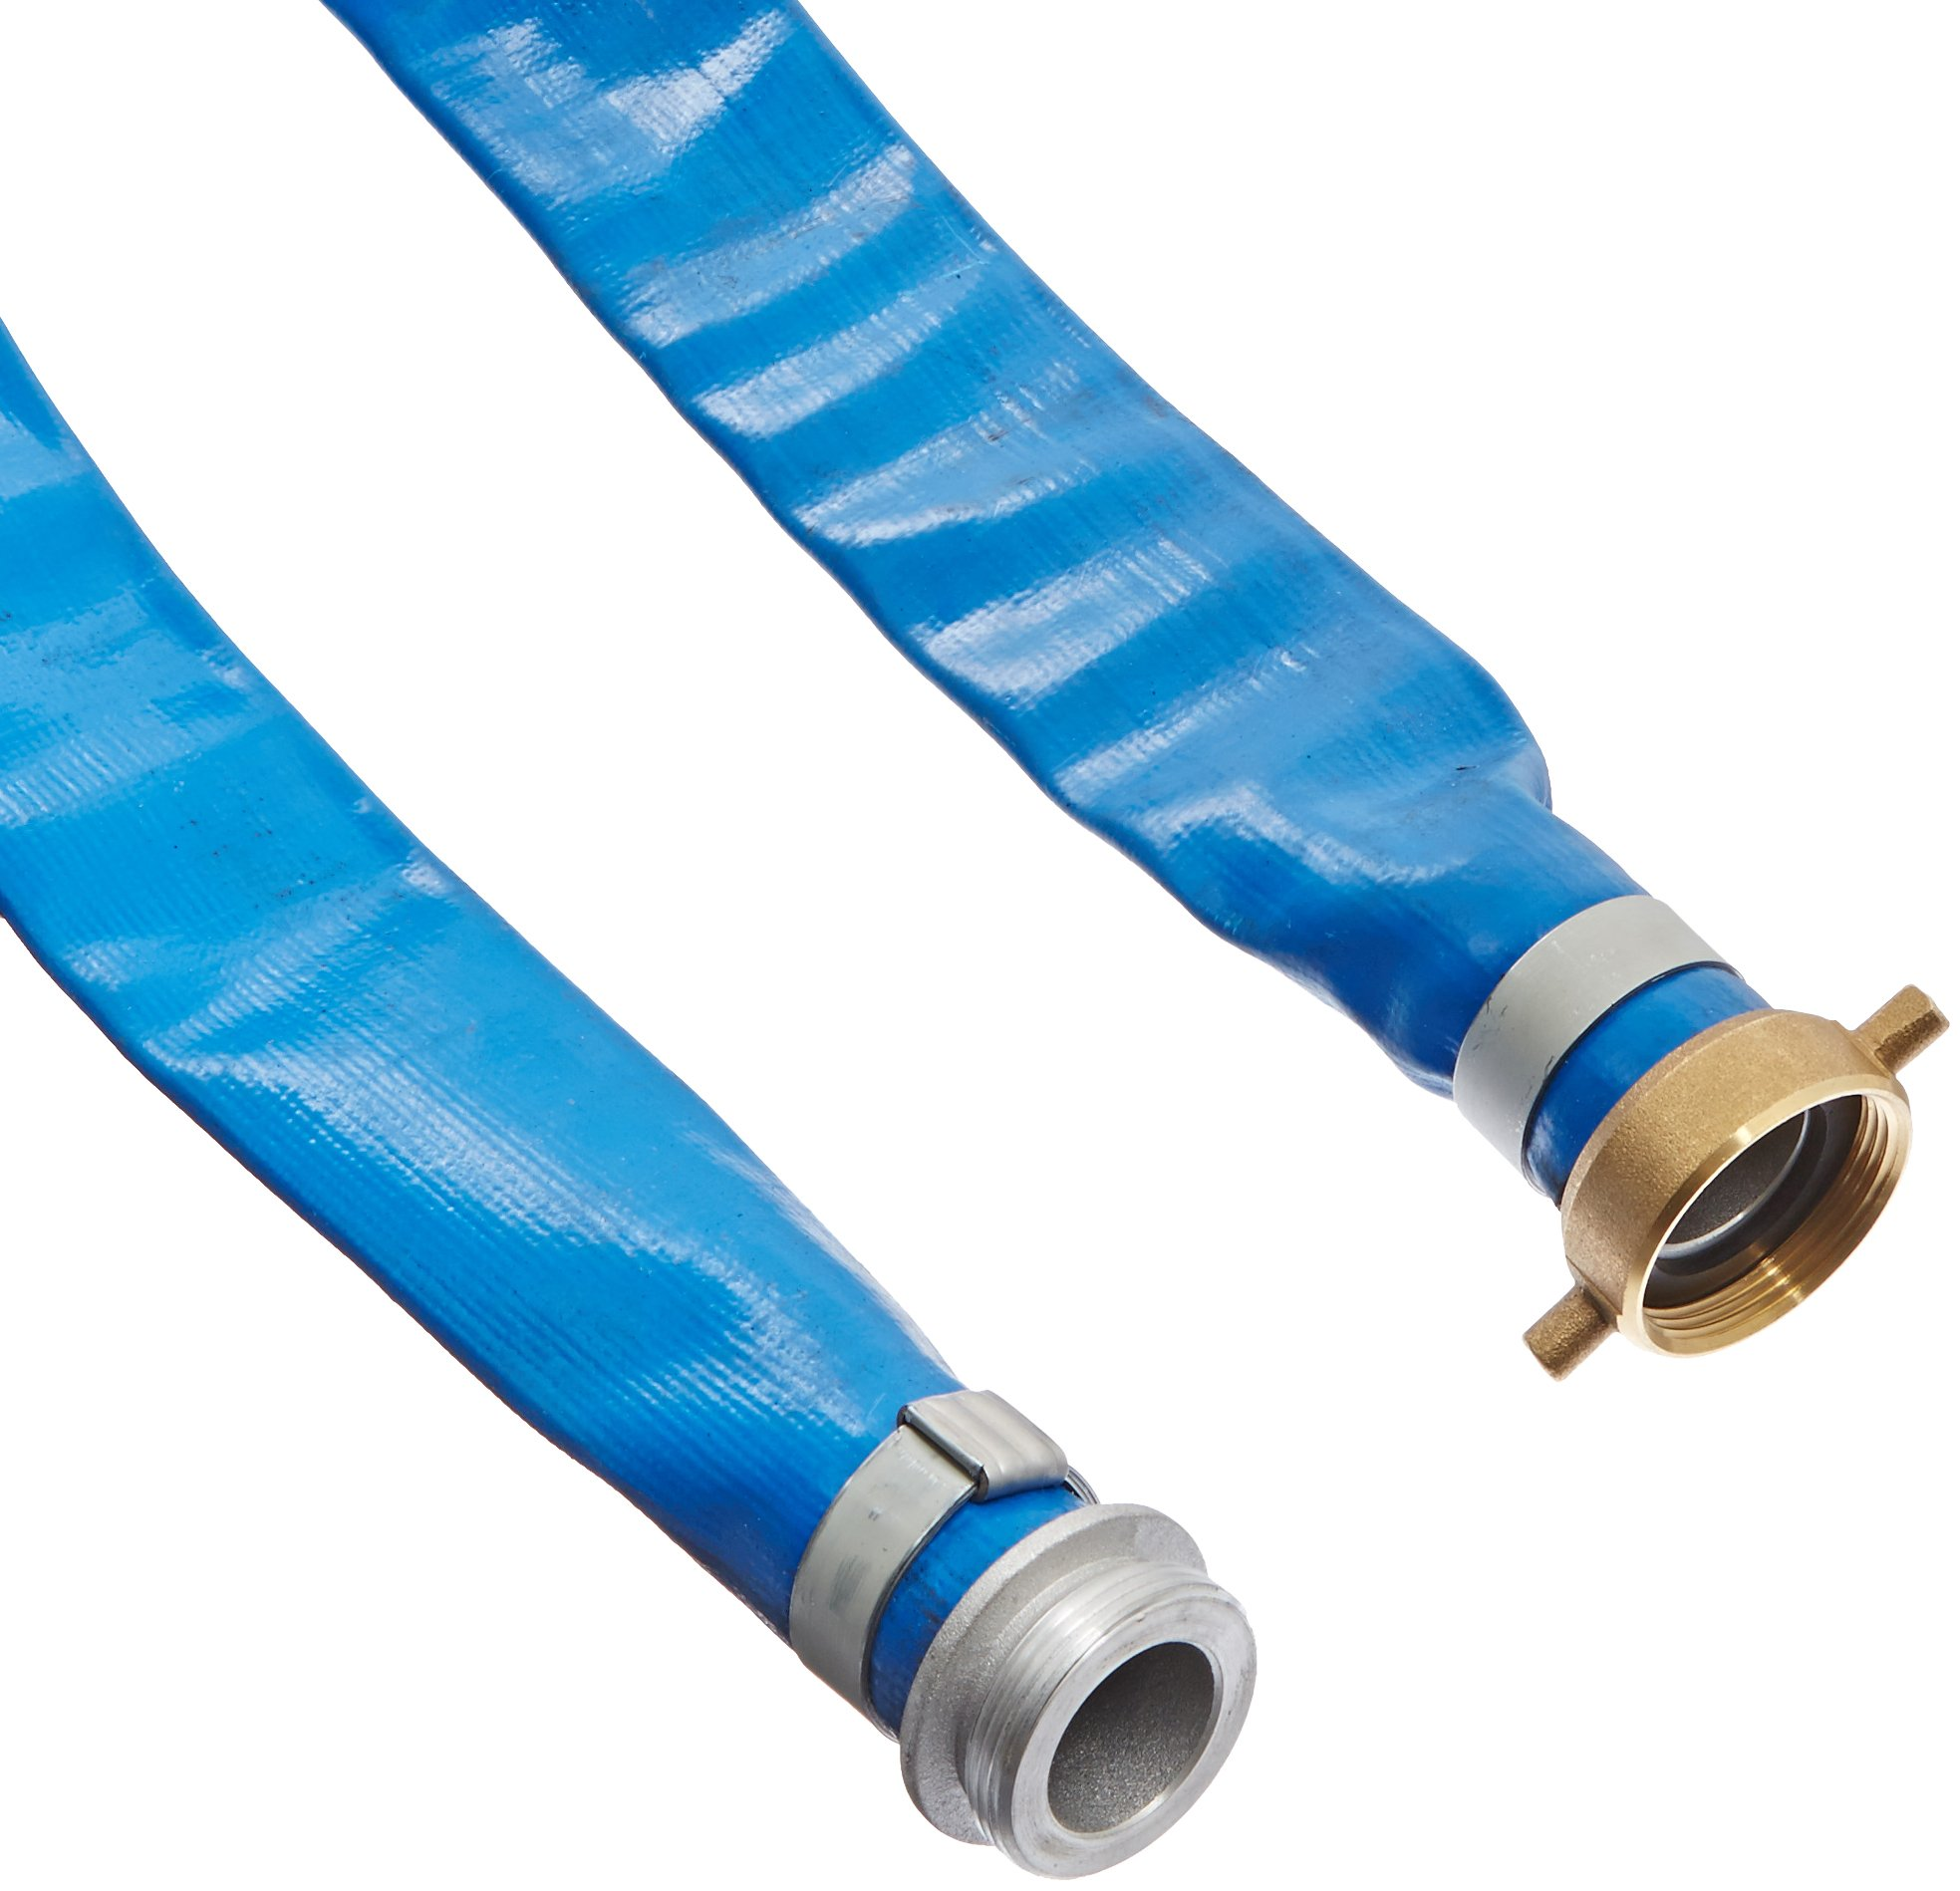 Apache 98138015 1-1/2'' x 50' Blue PVC Lay-Flat Discharge Hose with Aluminum Pin Lug Fittings